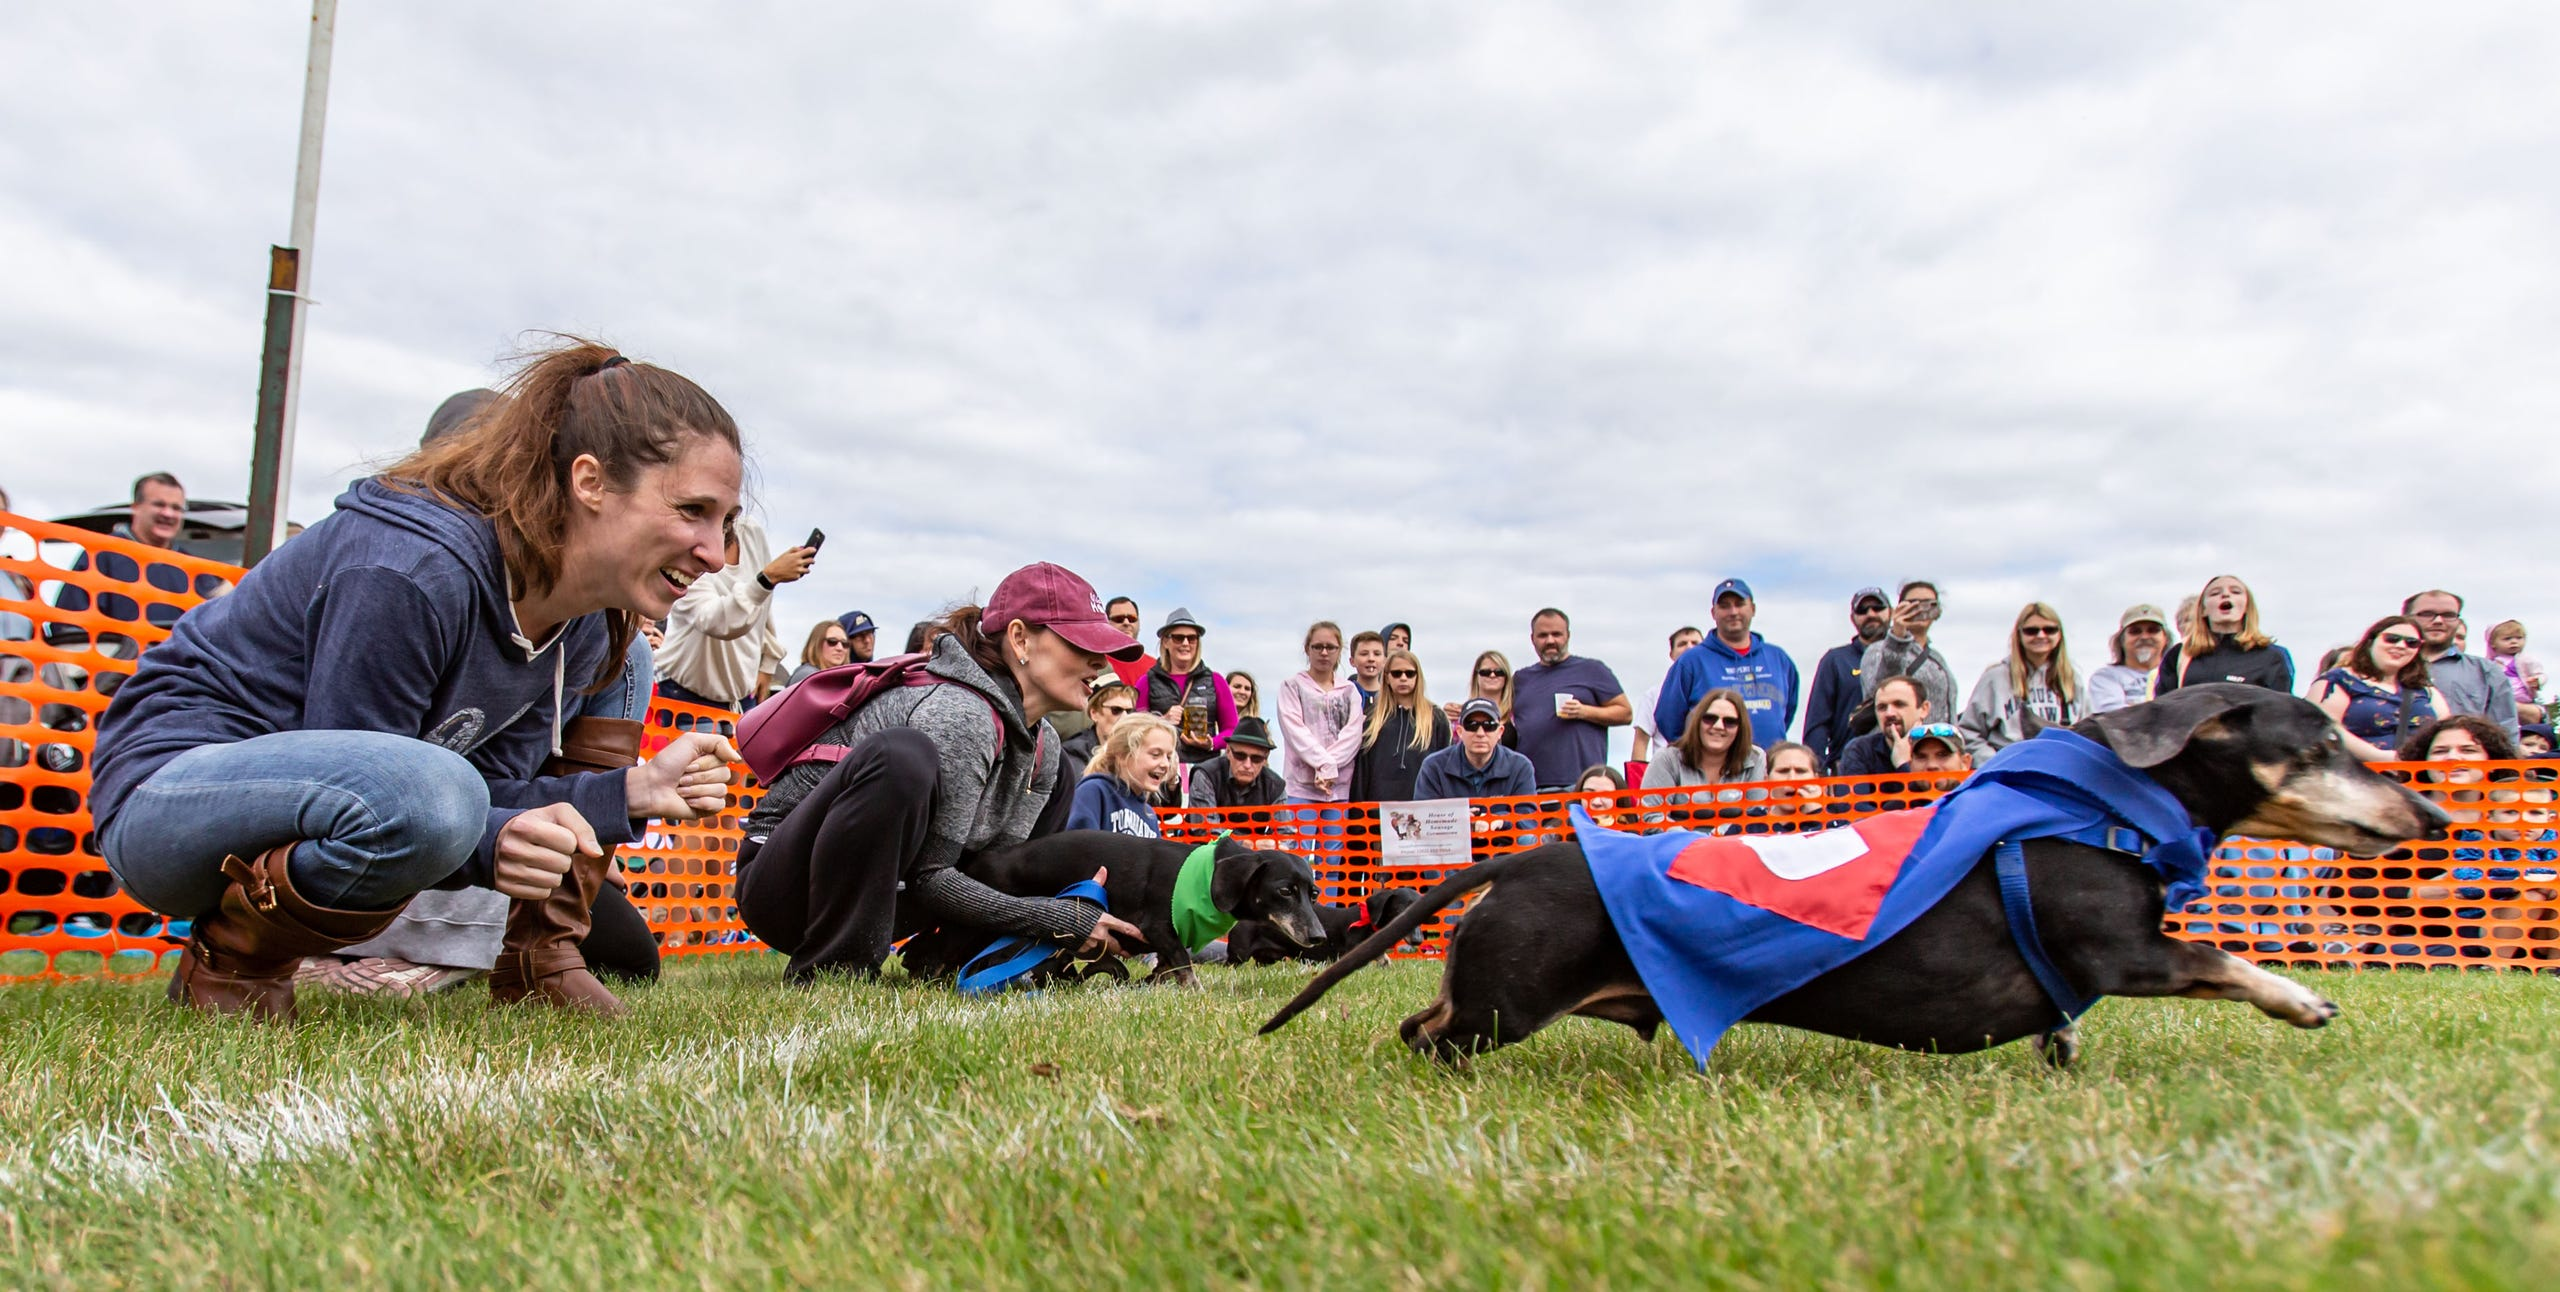 Pint-sized pups compete in the popular Dachshund Dash event during the 25th annual Germantown Hunsrucker Oktoberfest at Dheinsville Historic Park on Saturday, Sept. 28, 2019. The free family oriented event features music, dancing, food and drink, games and more.